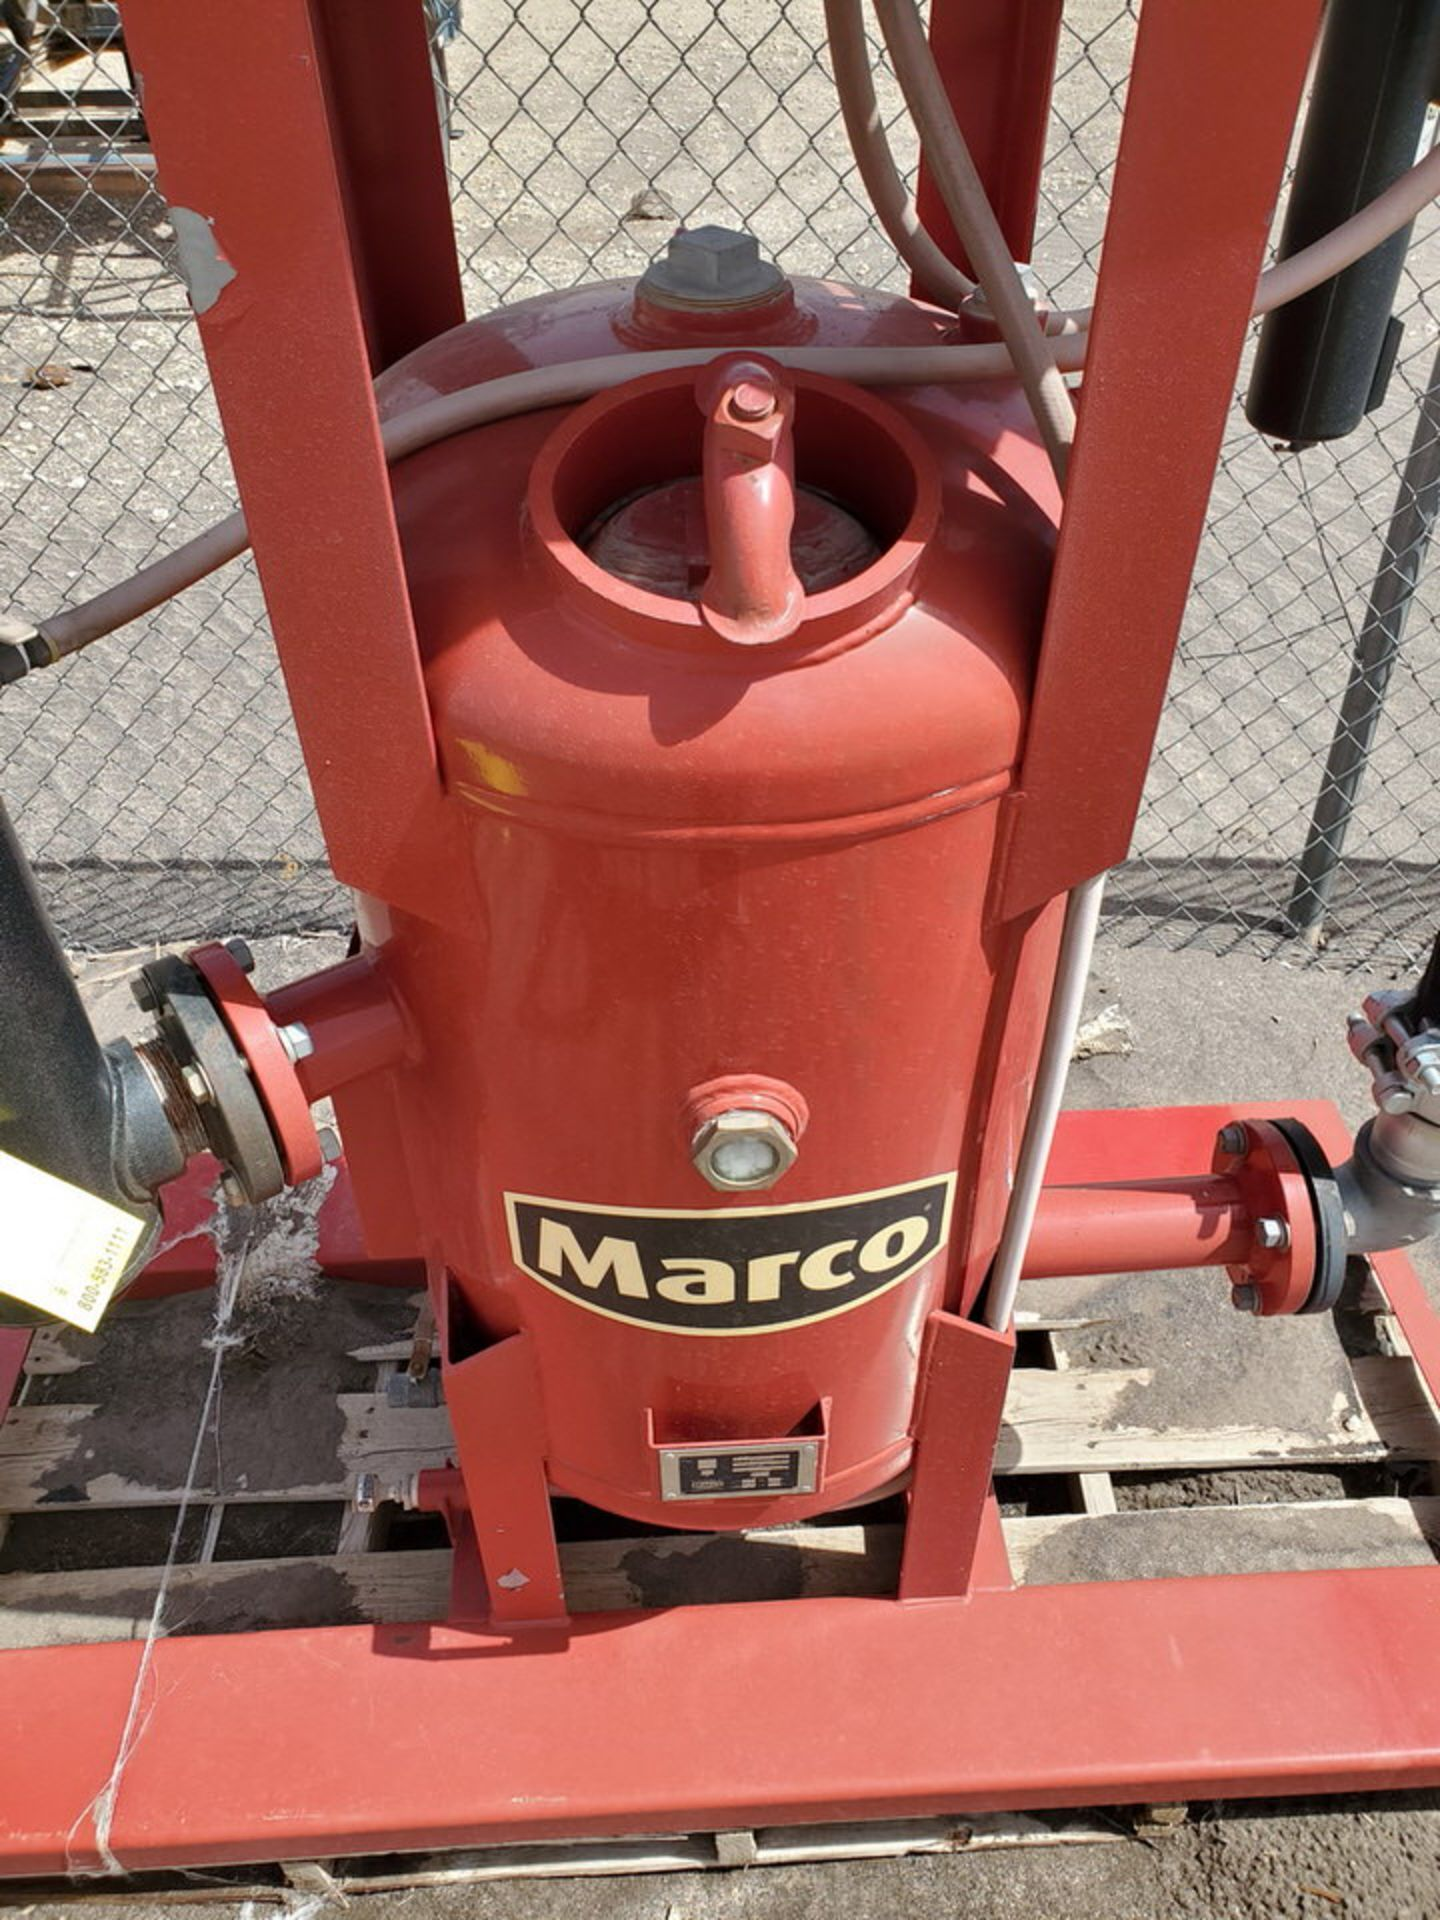 """2017 Marco Air Dryer 150psi@250F, -20@150psi, Vessel Dims: 30"""" Seam To Seam; Overall Dims: 72"""" x 35"""" - Image 10 of 11"""